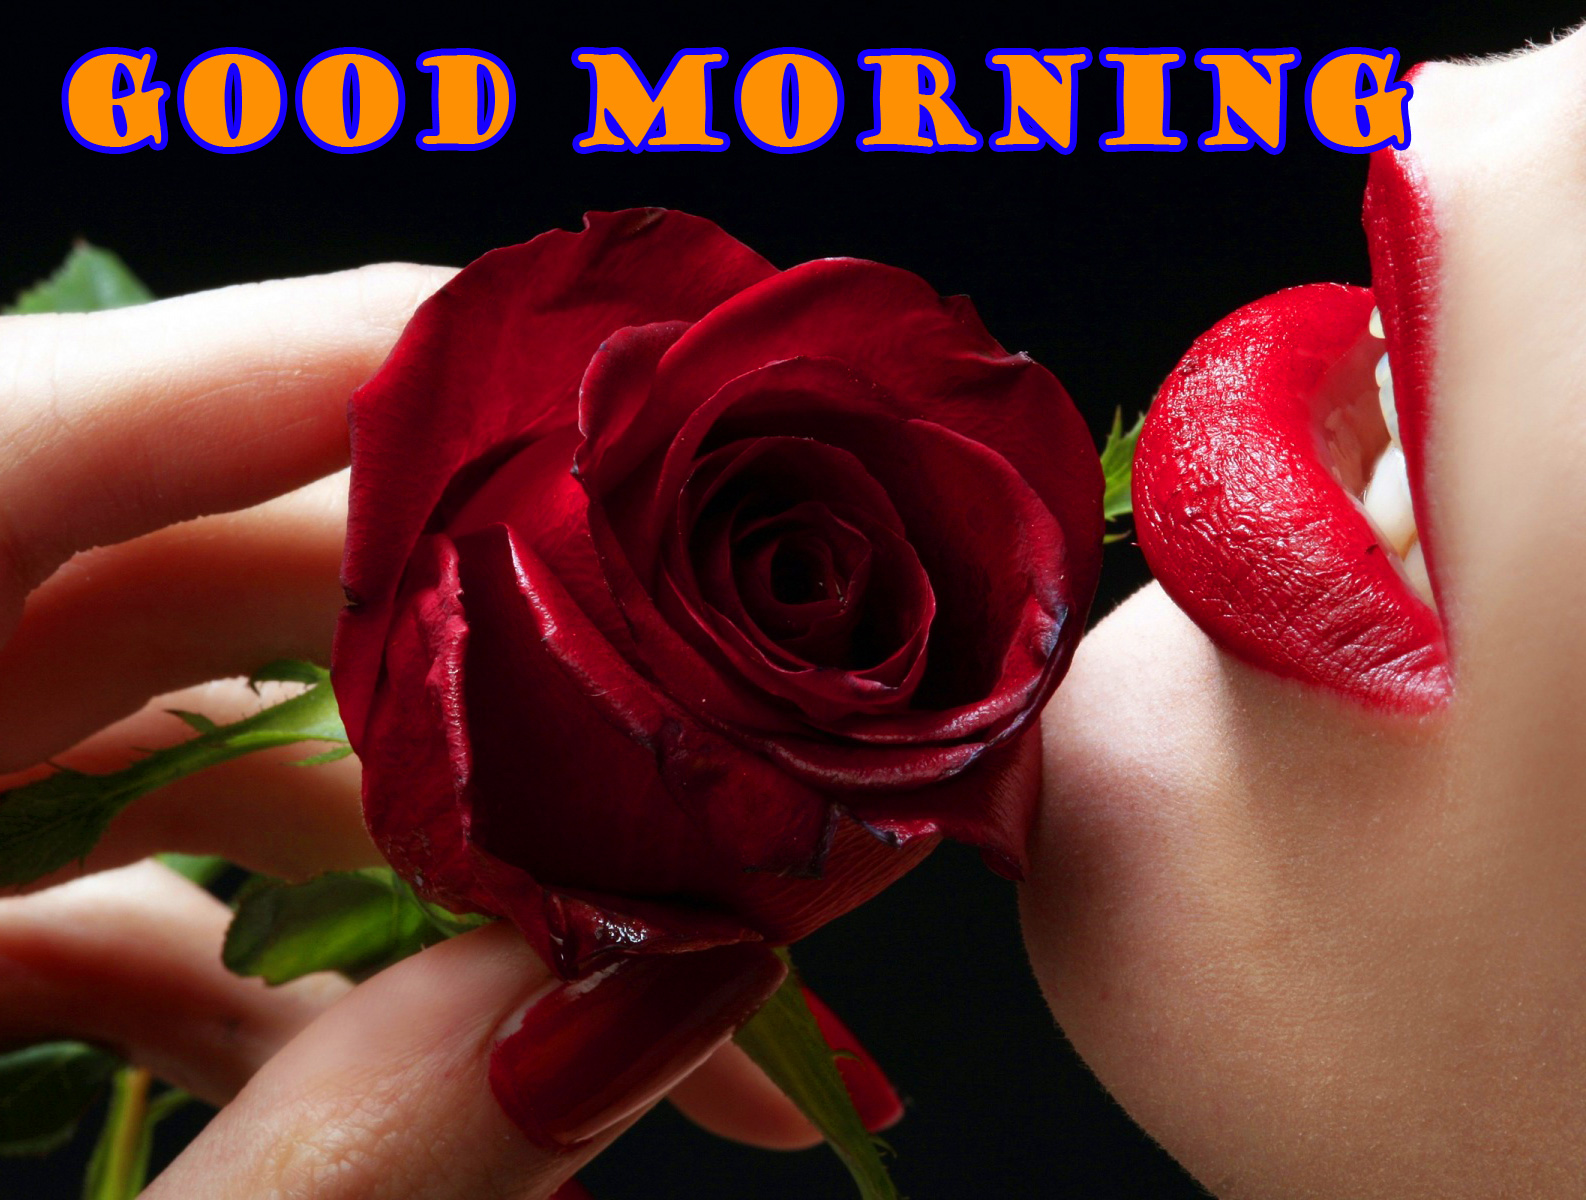 Good Morning Red Rose Photo Pictures Free HD Download